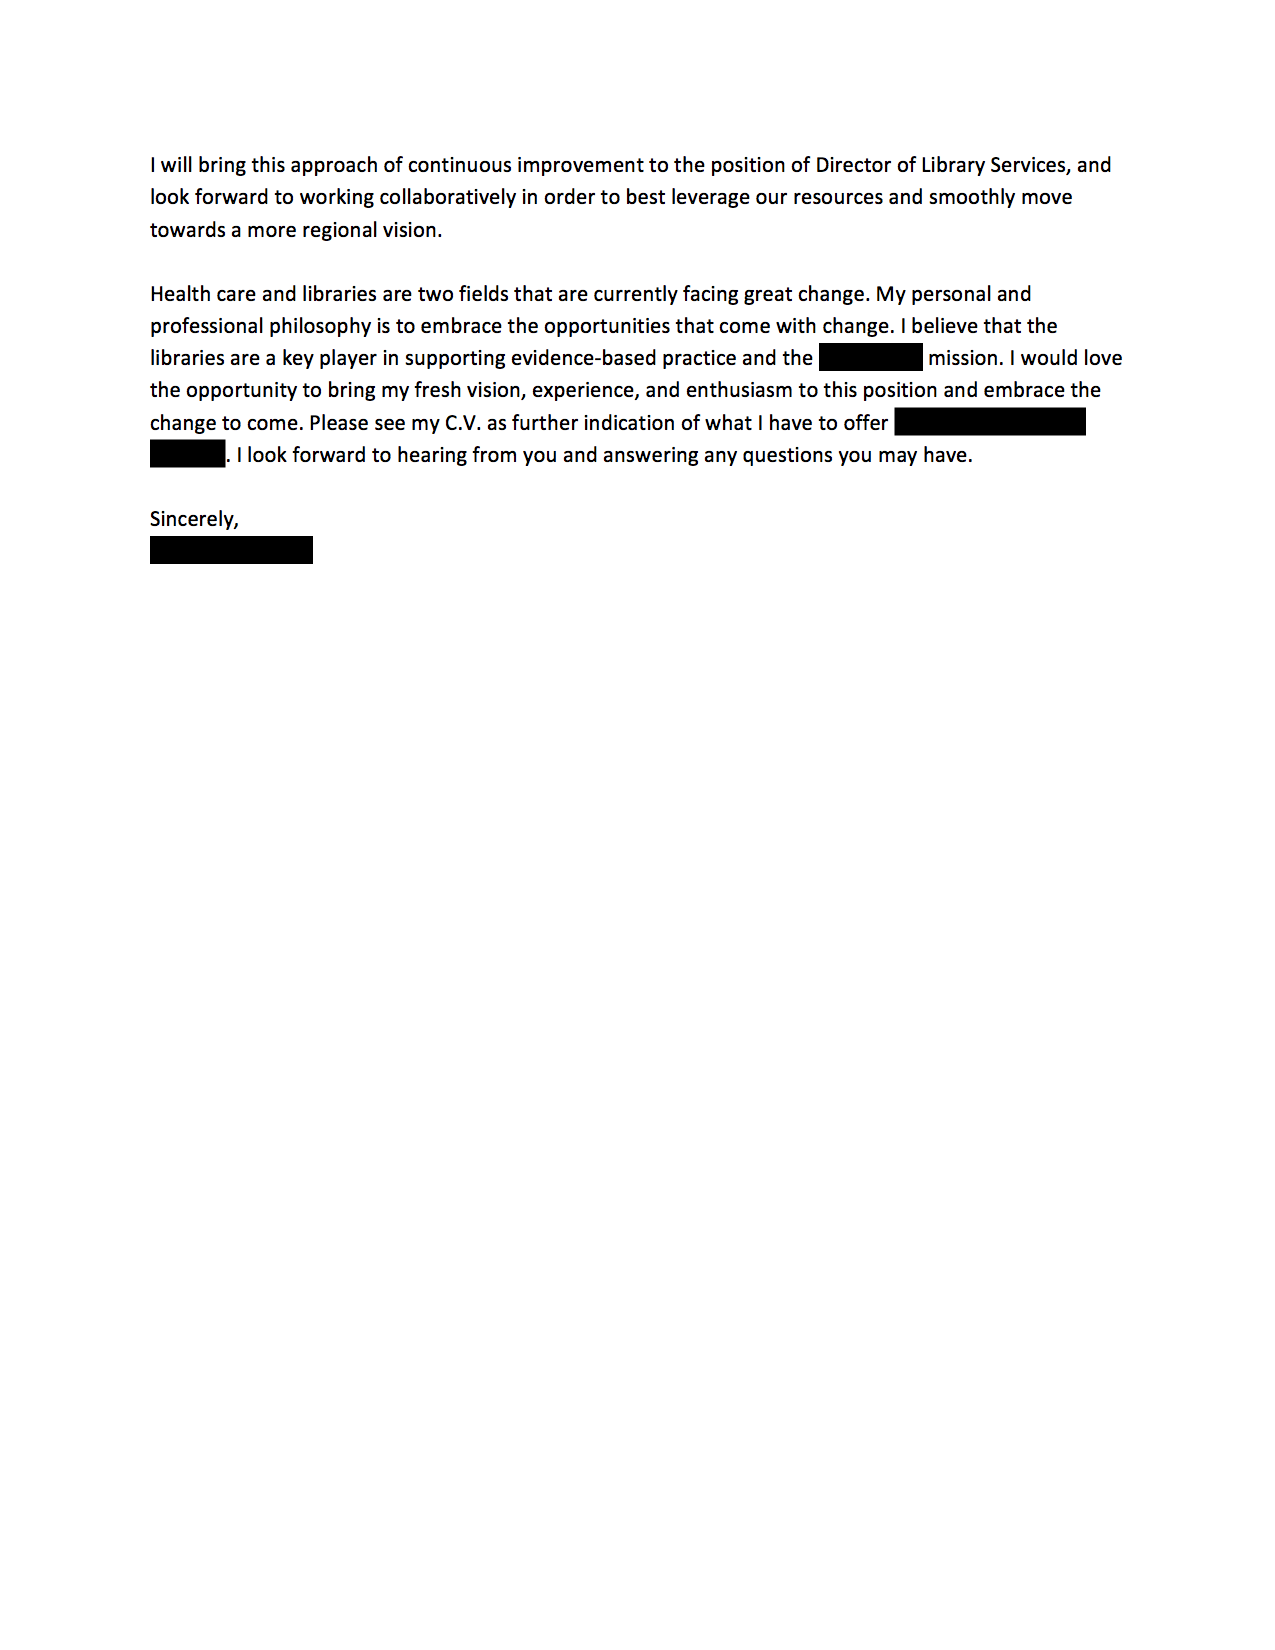 share this cover letter - Email Cover Letter Example